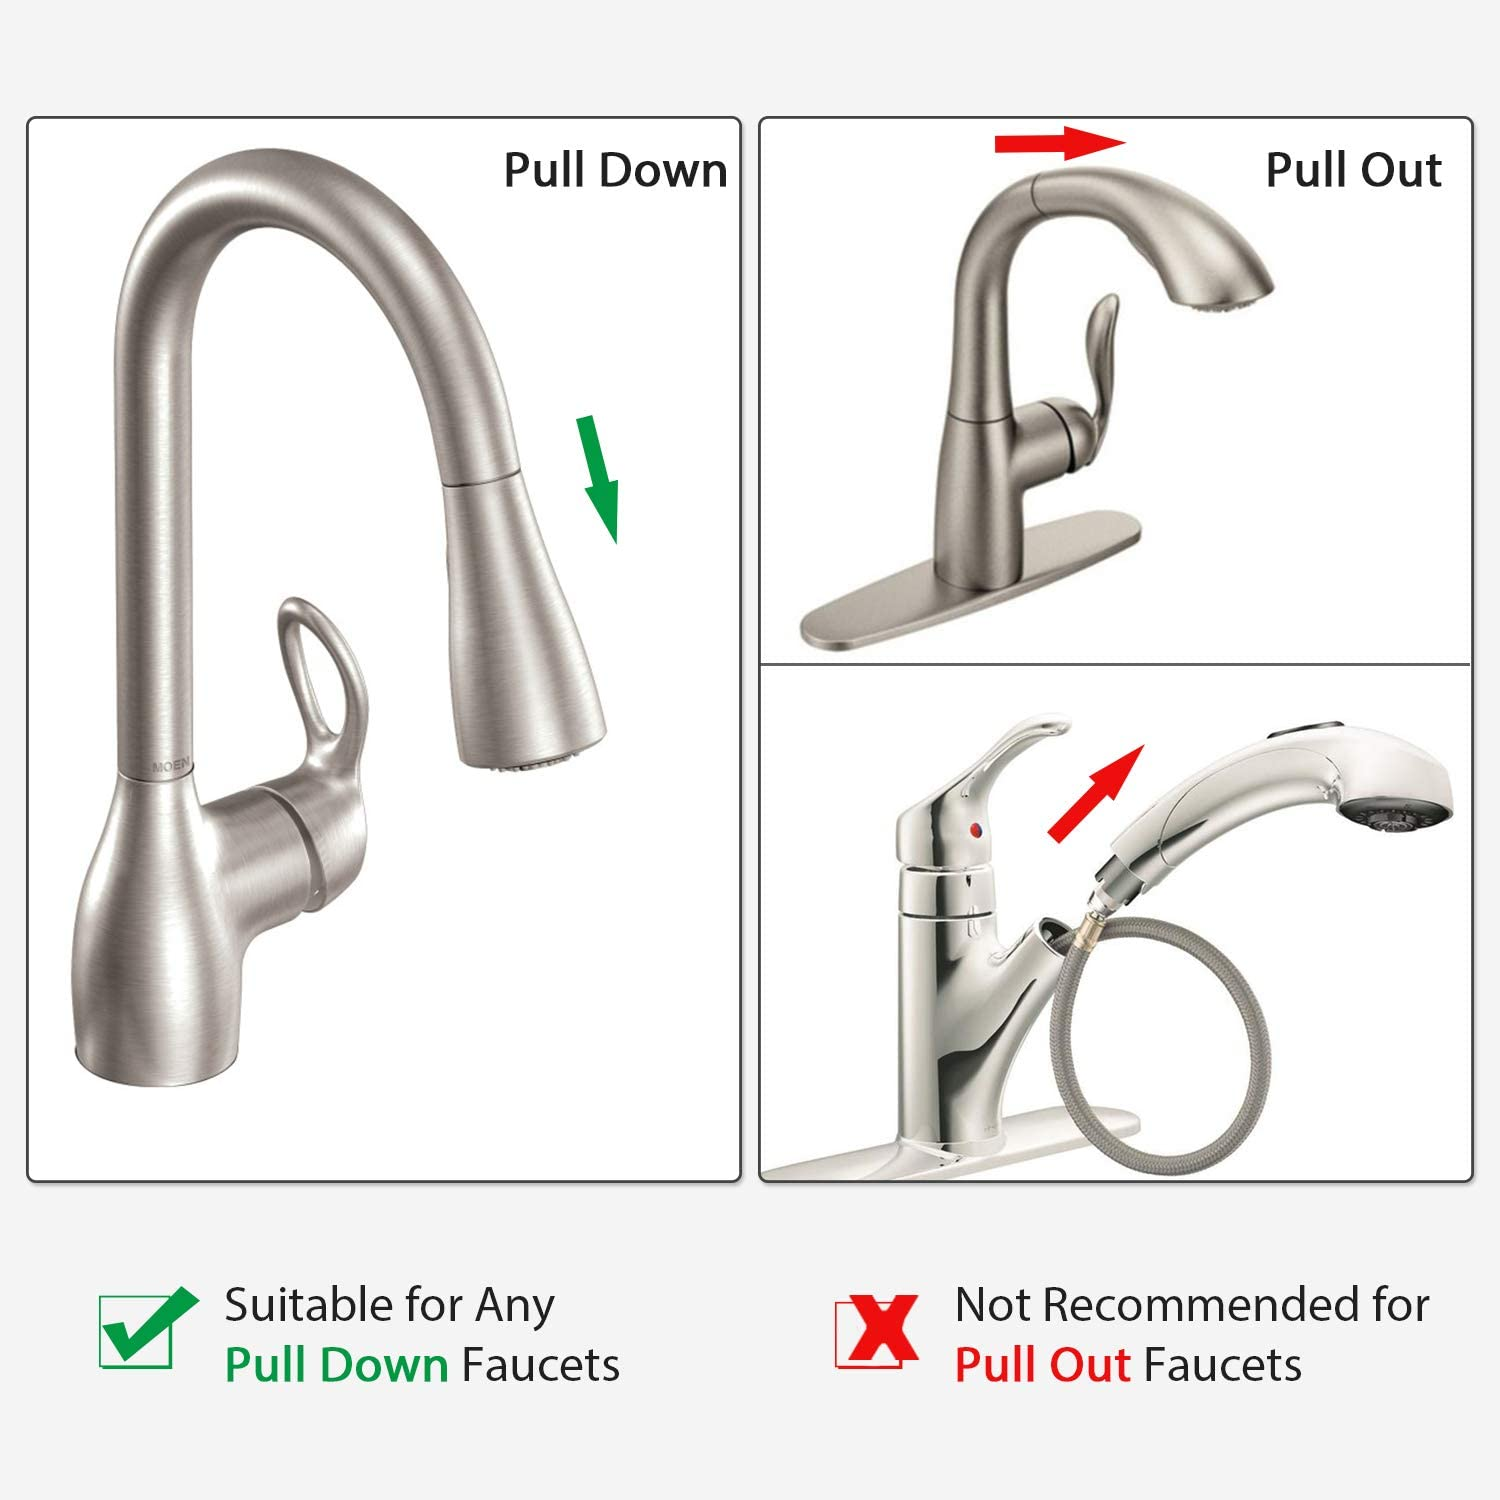 Replacement Hose Kit For Moen Kitchen Faucets Pulldown 150259 Amazon Com